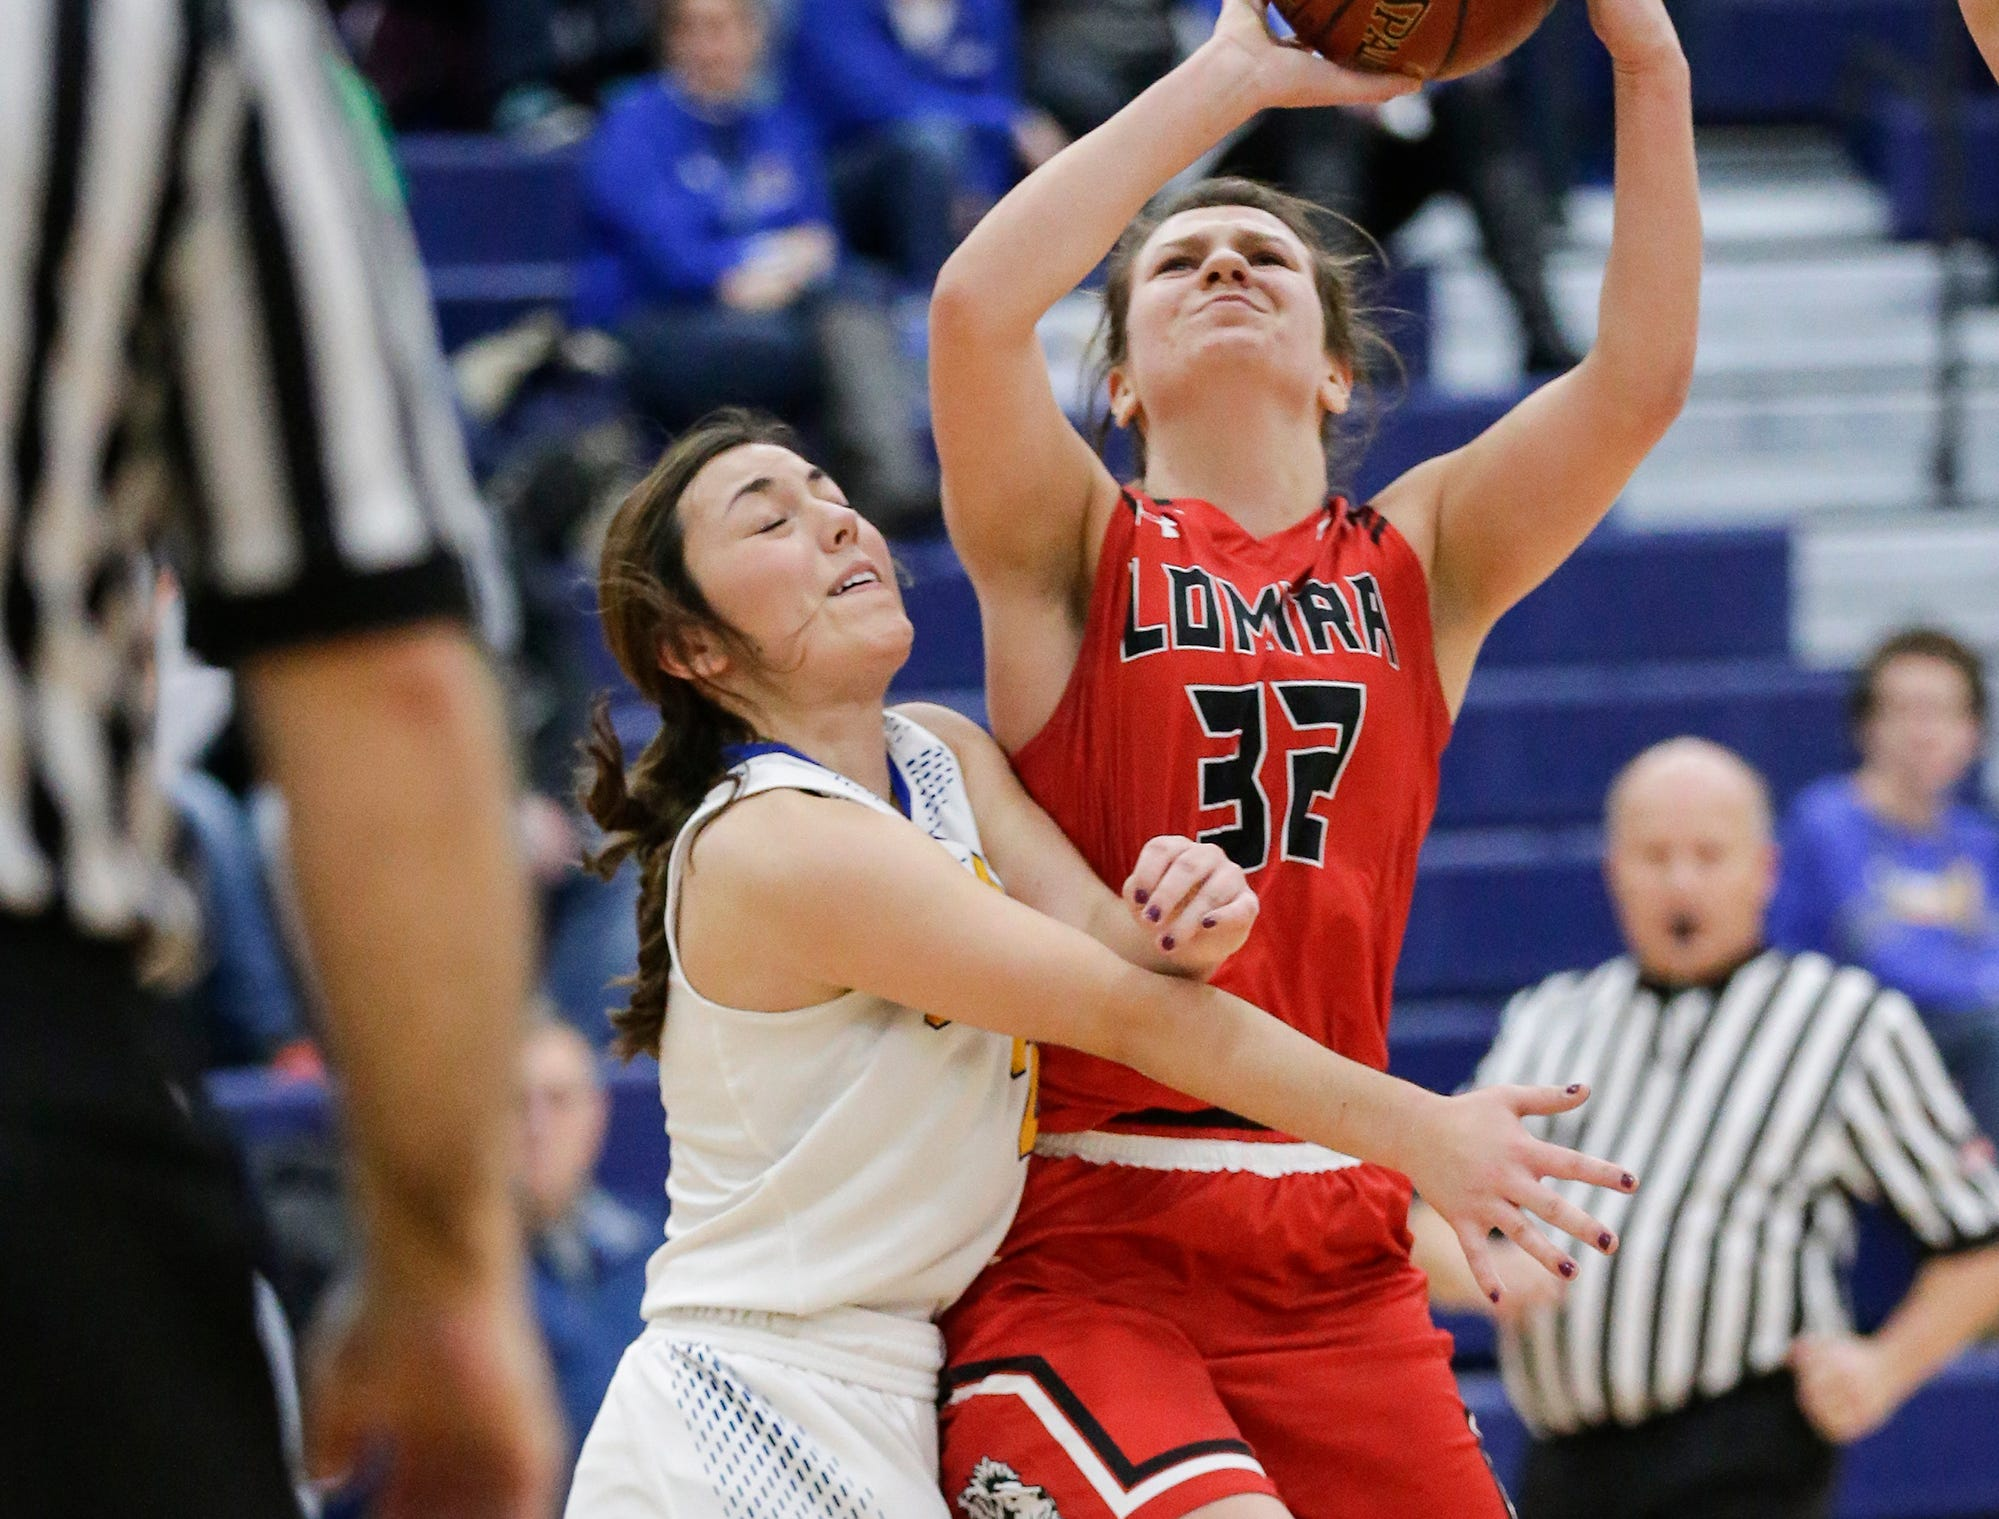 Lomira High School girls basketball's Crystal Geiger gets fouled by Campbellsport High School's Amber Kissinger during their game Friday, December 28, 2018 in Campbellsport. Doug Raflik/USA TODAY NETWORK-Wisconsin